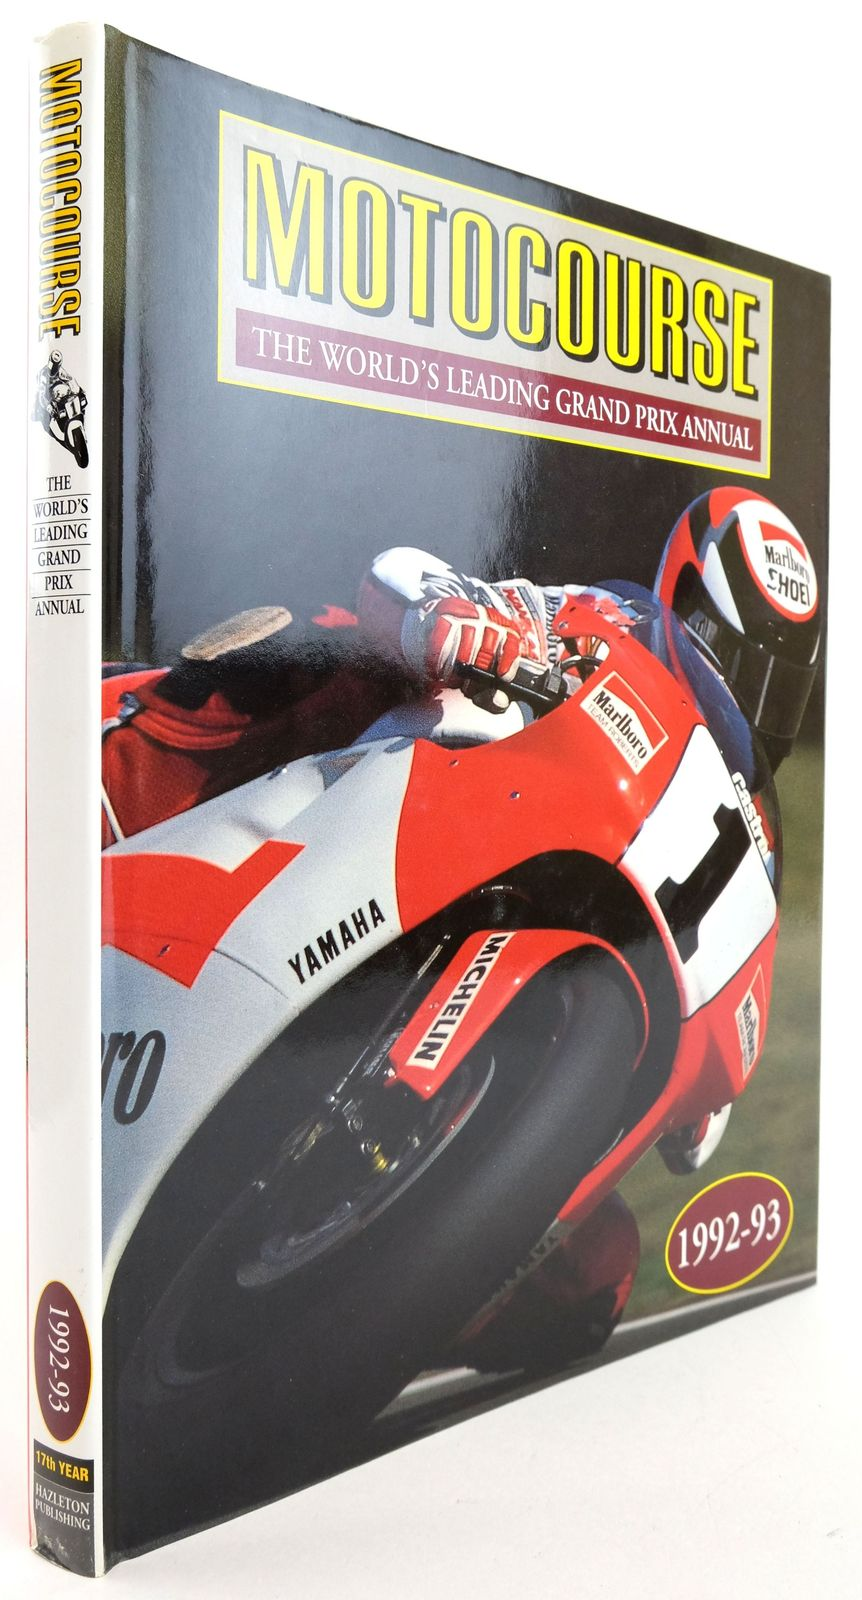 Photo of MOTOCOURSE 1992-93 published by Hazleton Publishing (STOCK CODE: 1819879)  for sale by Stella & Rose's Books